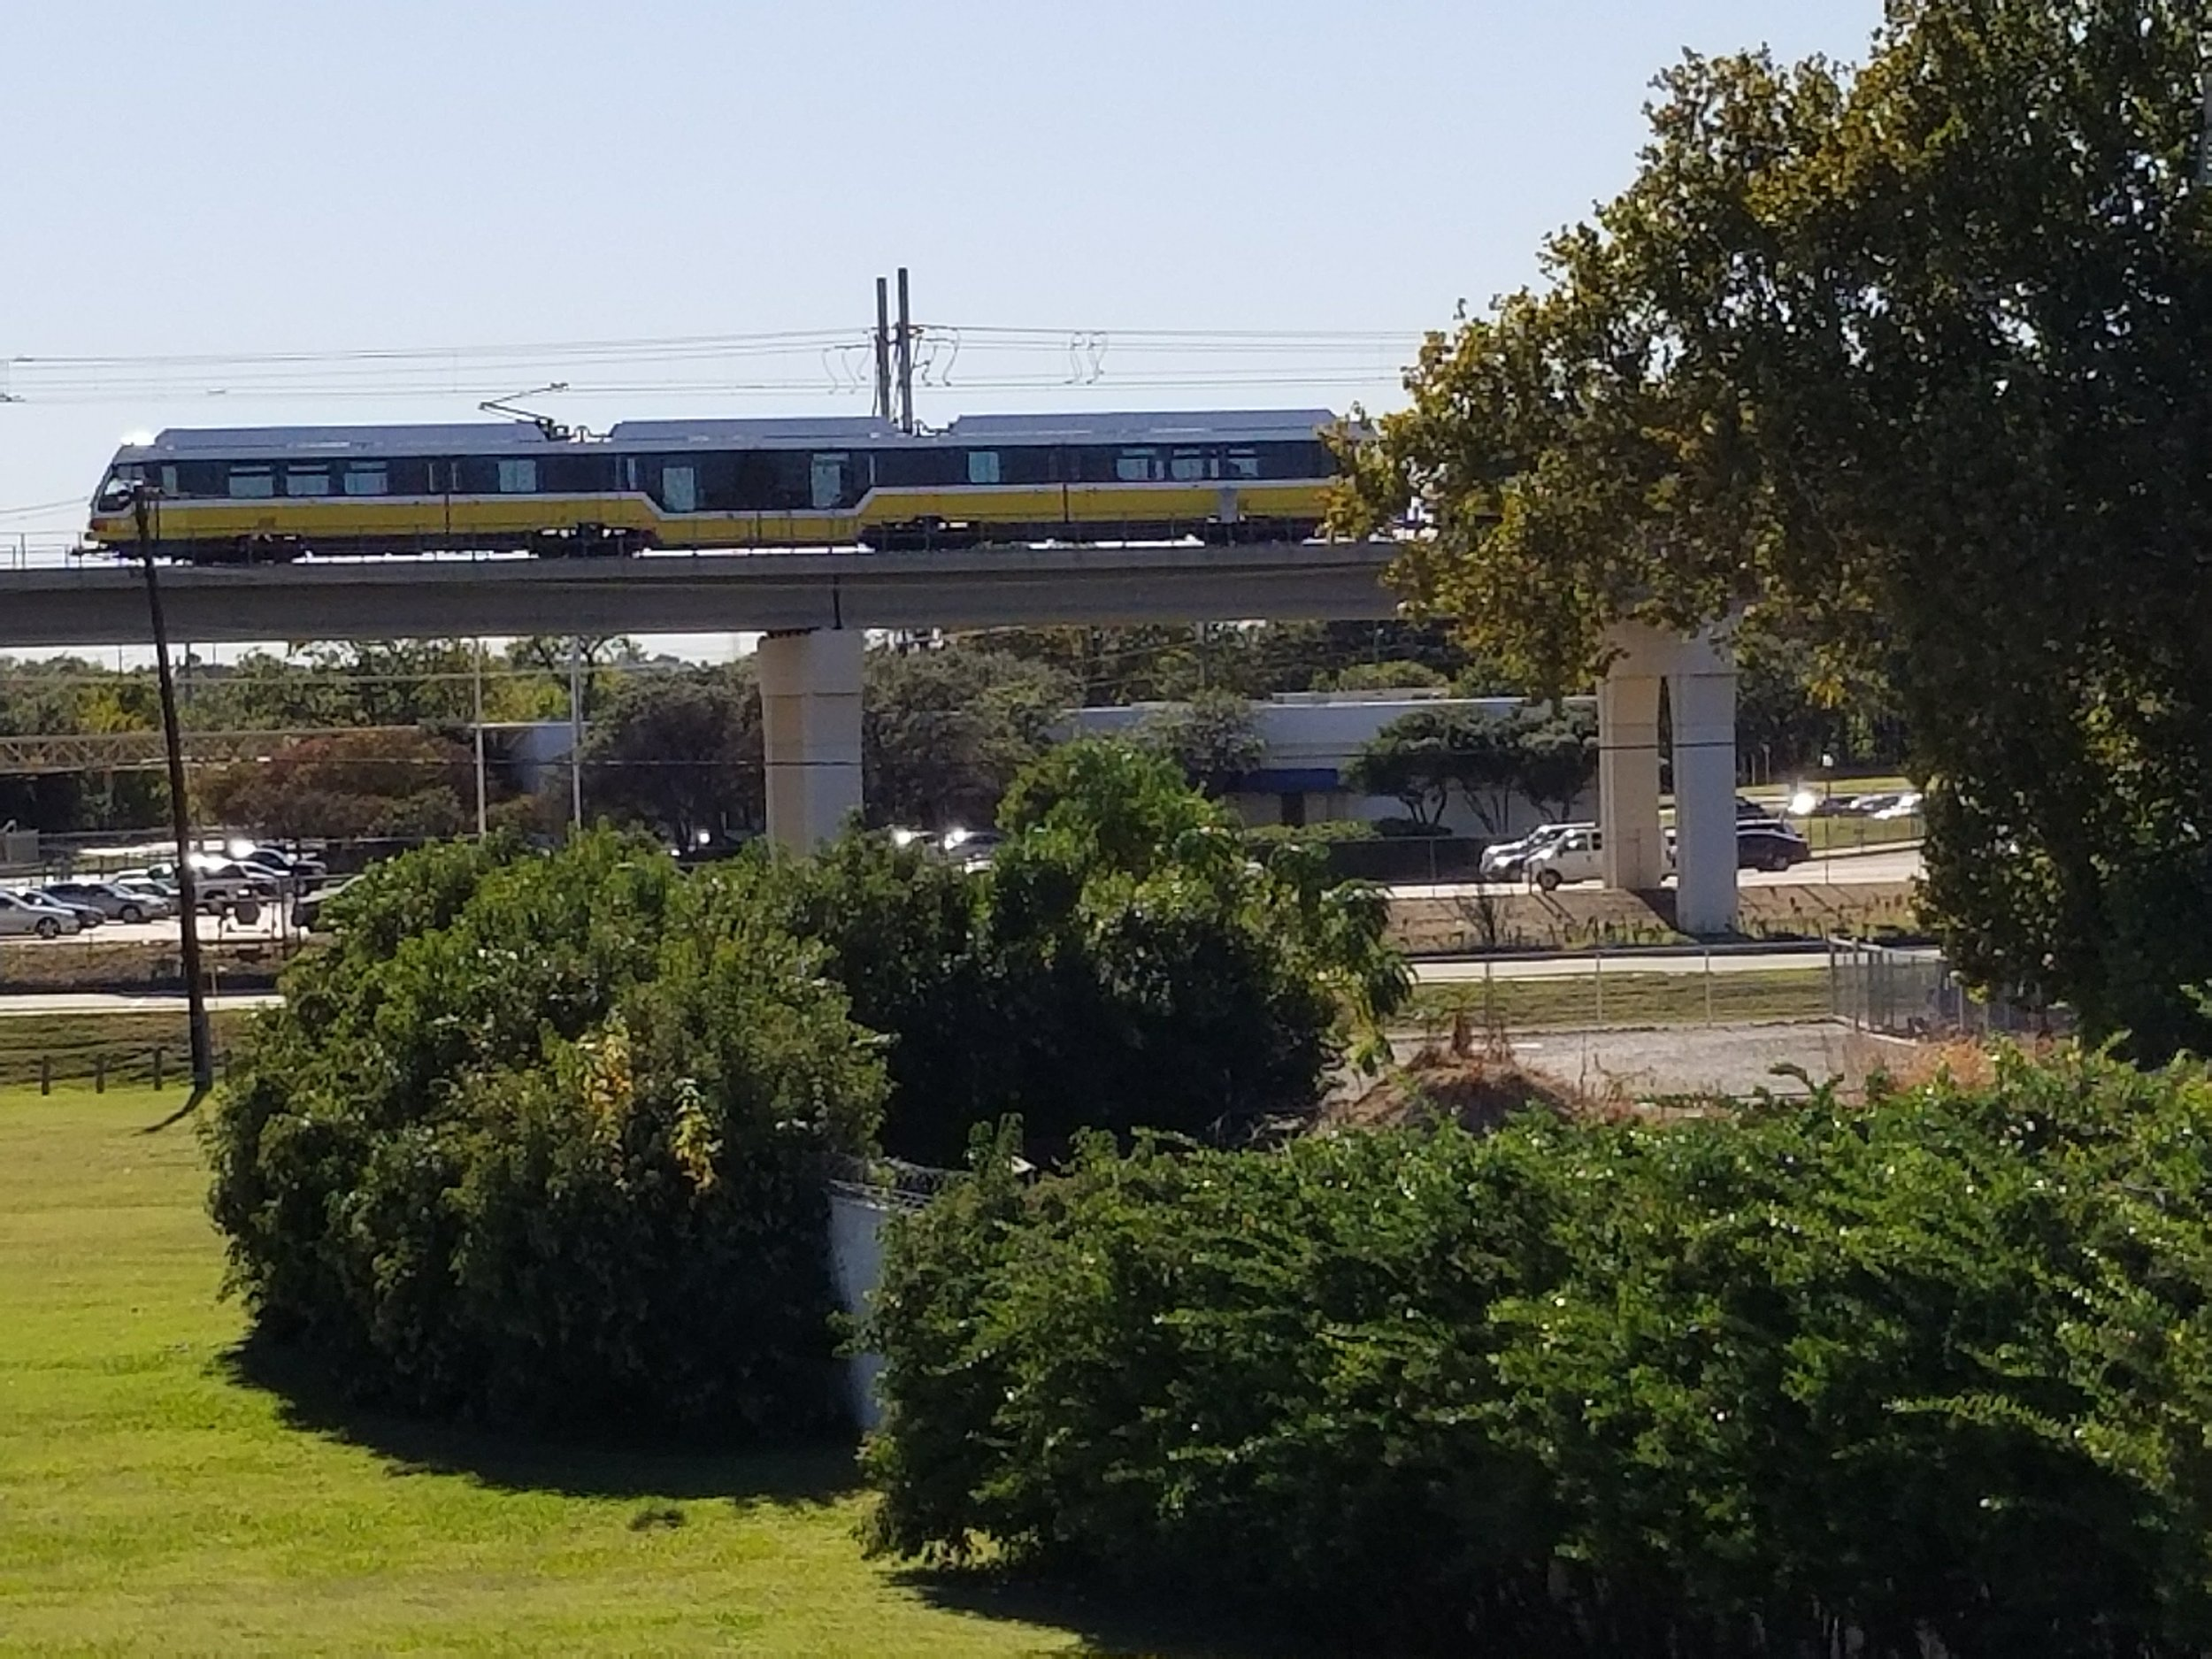 View of the DART train passing by the Bachman Lake Skatepark